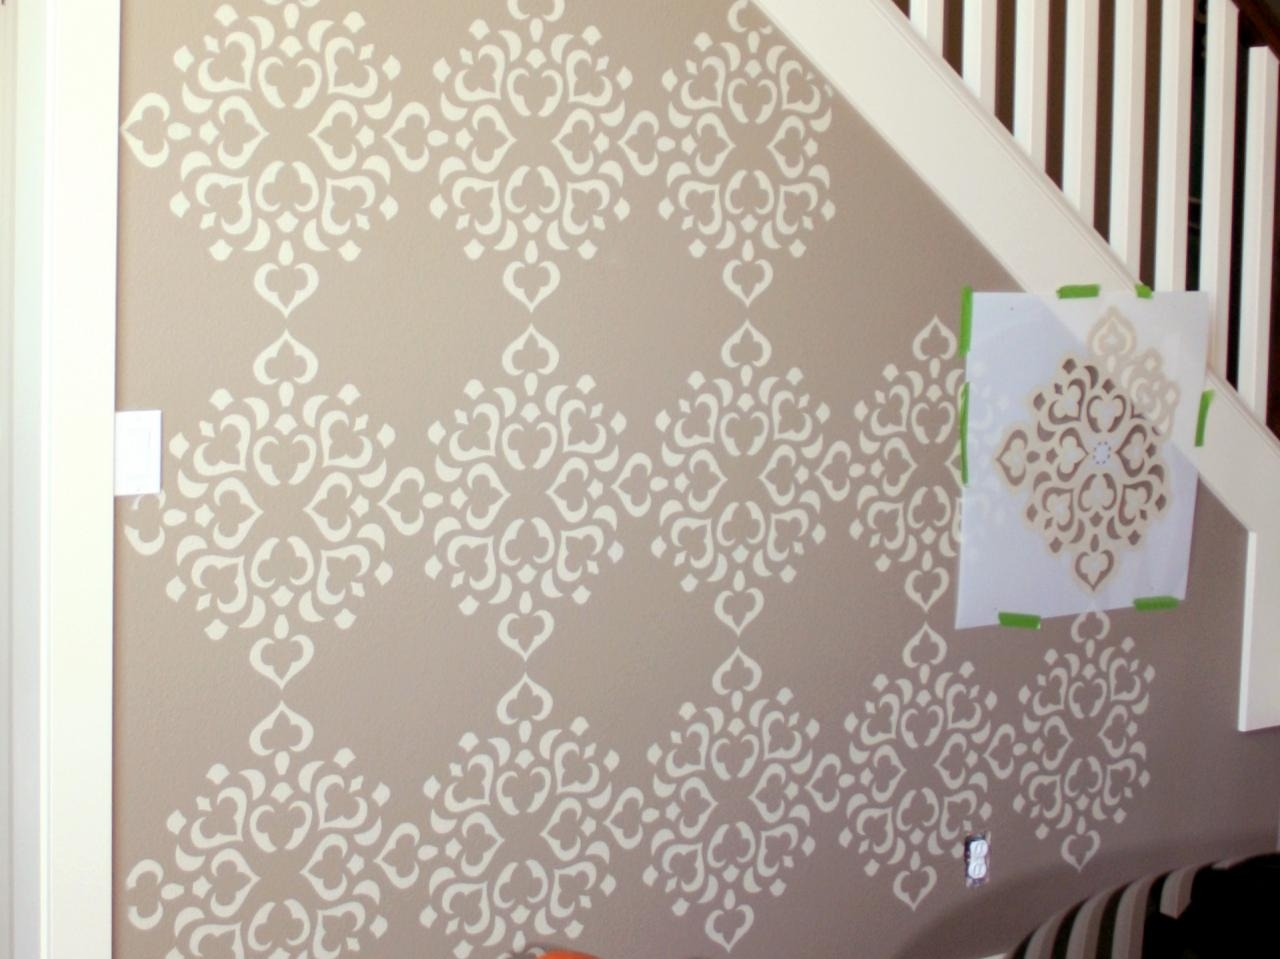 Give Your Home A Dramatic Look With The Help Of Wall Stencils Within Most Up To Date Stencil Wall Art (View 8 of 20)